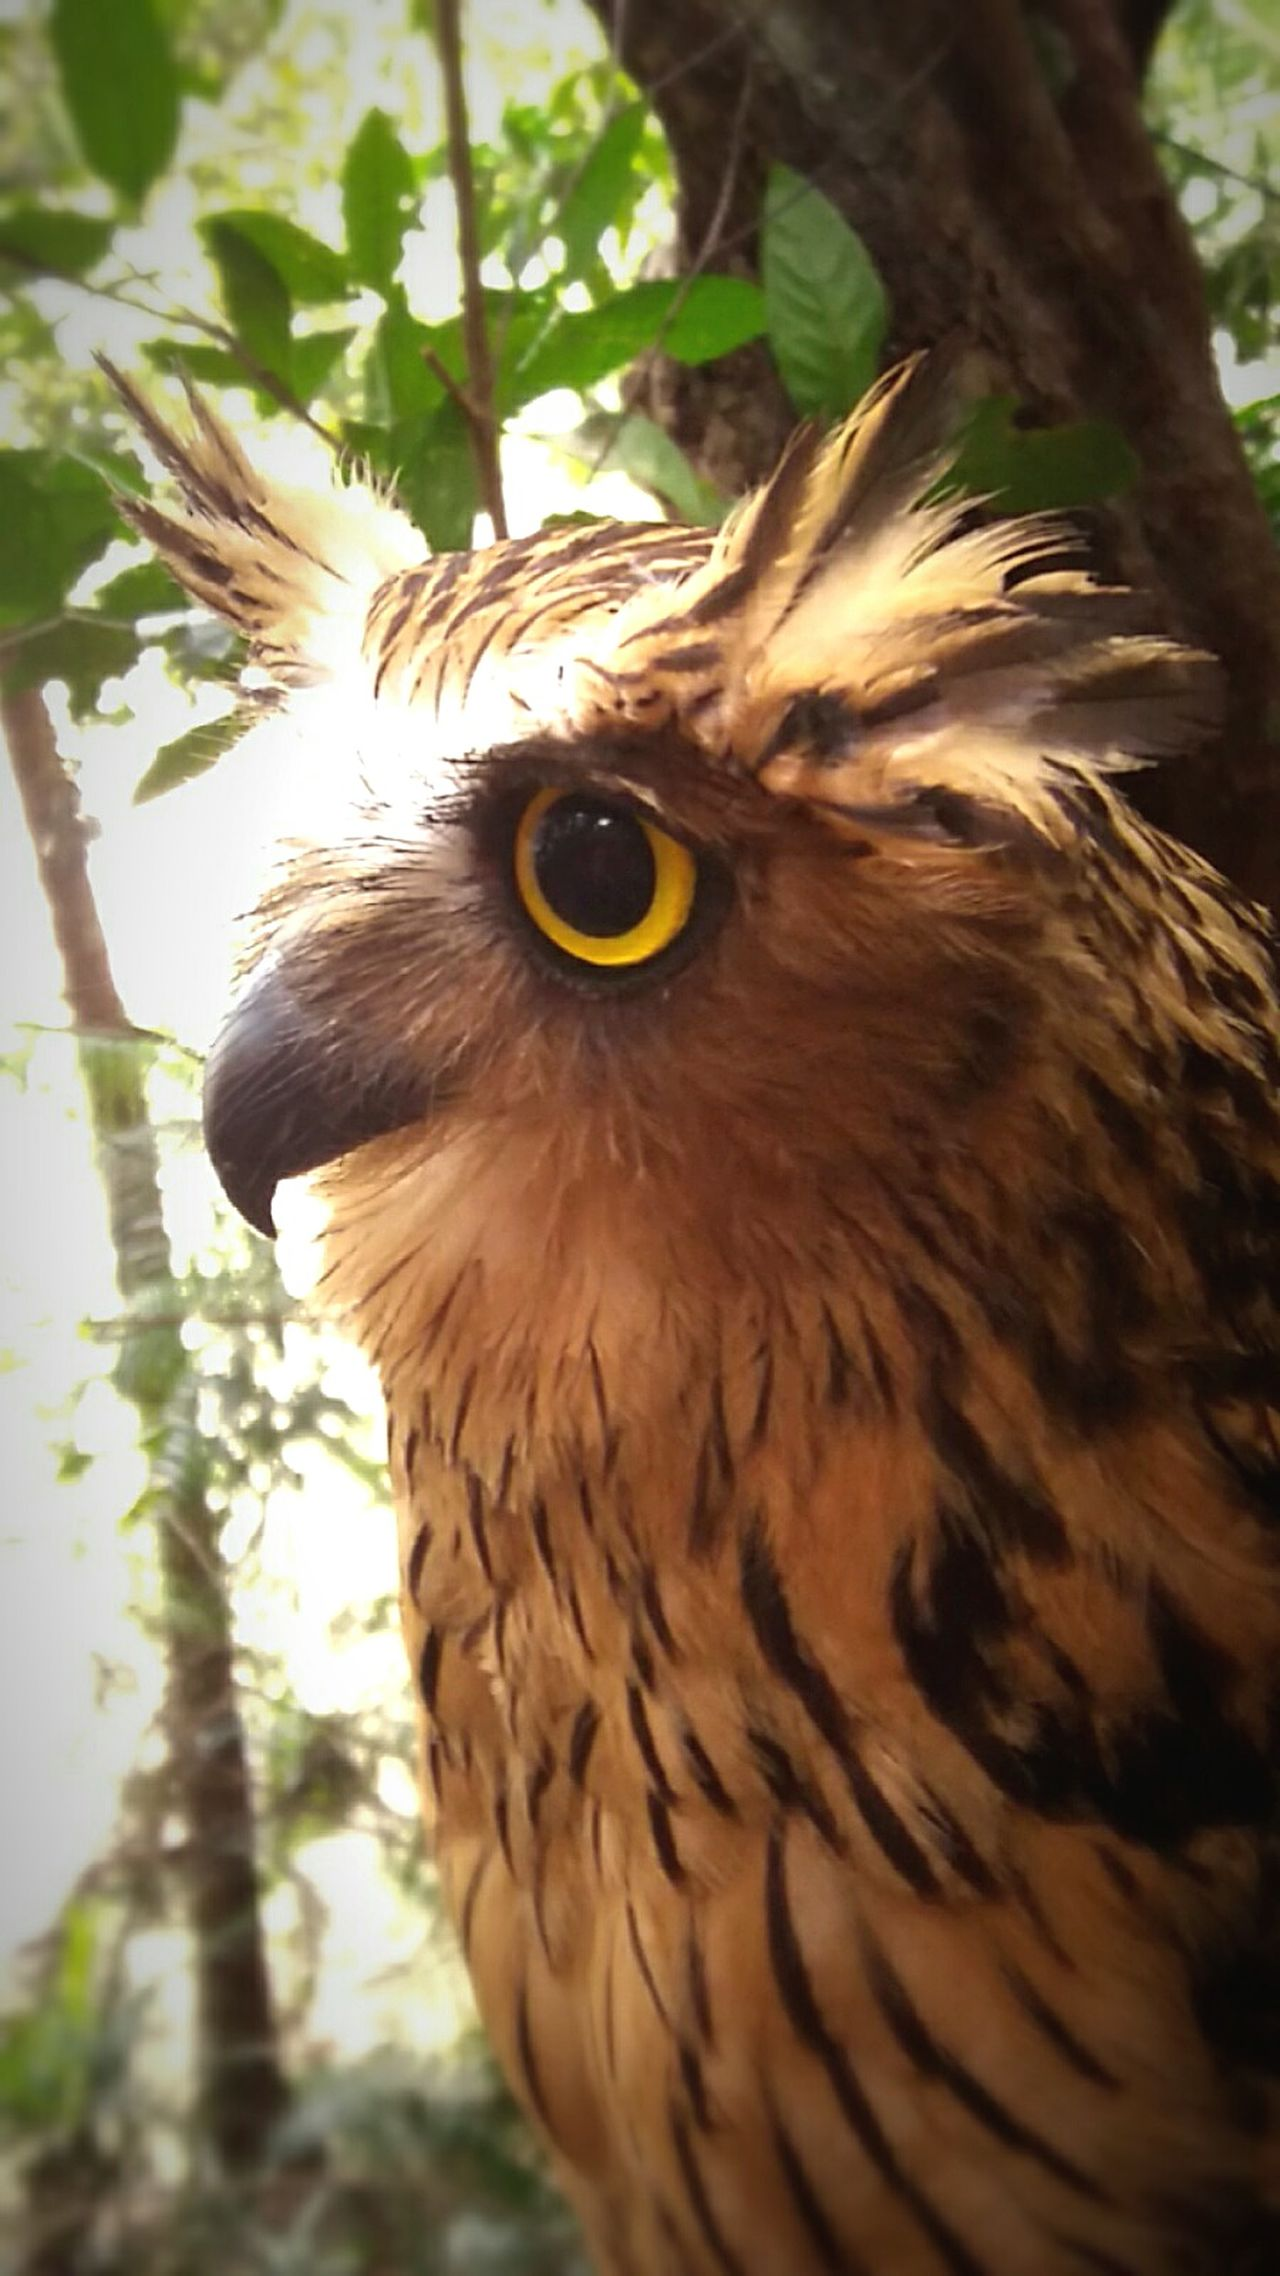 Owl Owl Photography Owls💕 Owl Eyes One Animal Tree Eye Animal Themes Bird Nature No People Outdoors Day Close-upEyeEm Gallery Animals In The Wild Beauty In Nature EyeEm Nature Lover